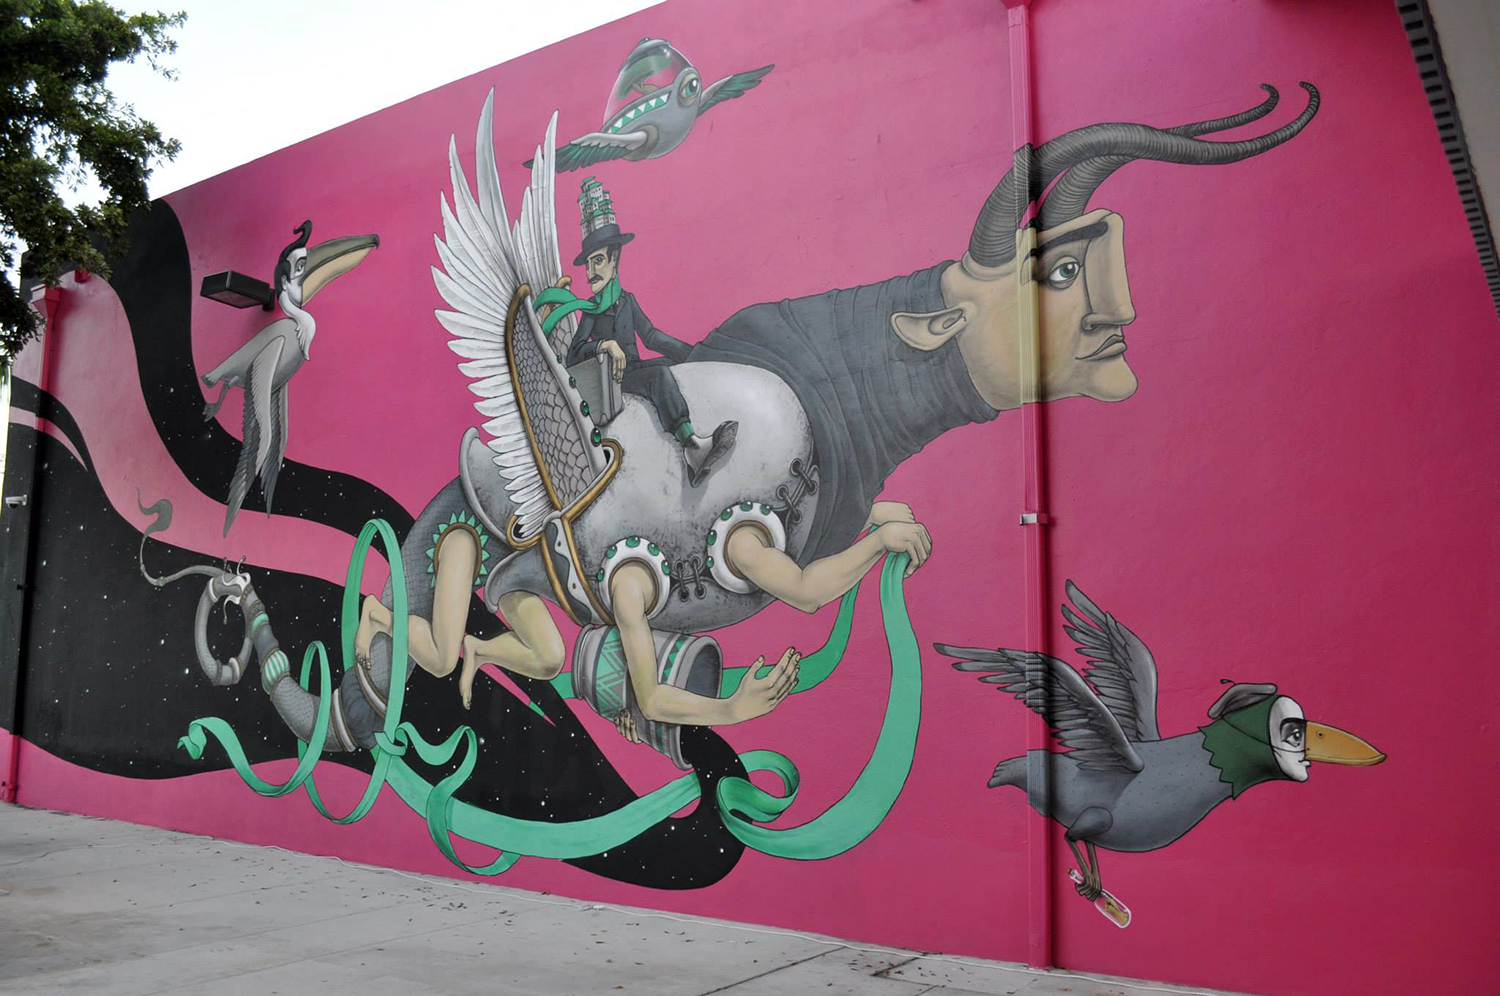 kislow-new-mural-in-wynwood-miami-03